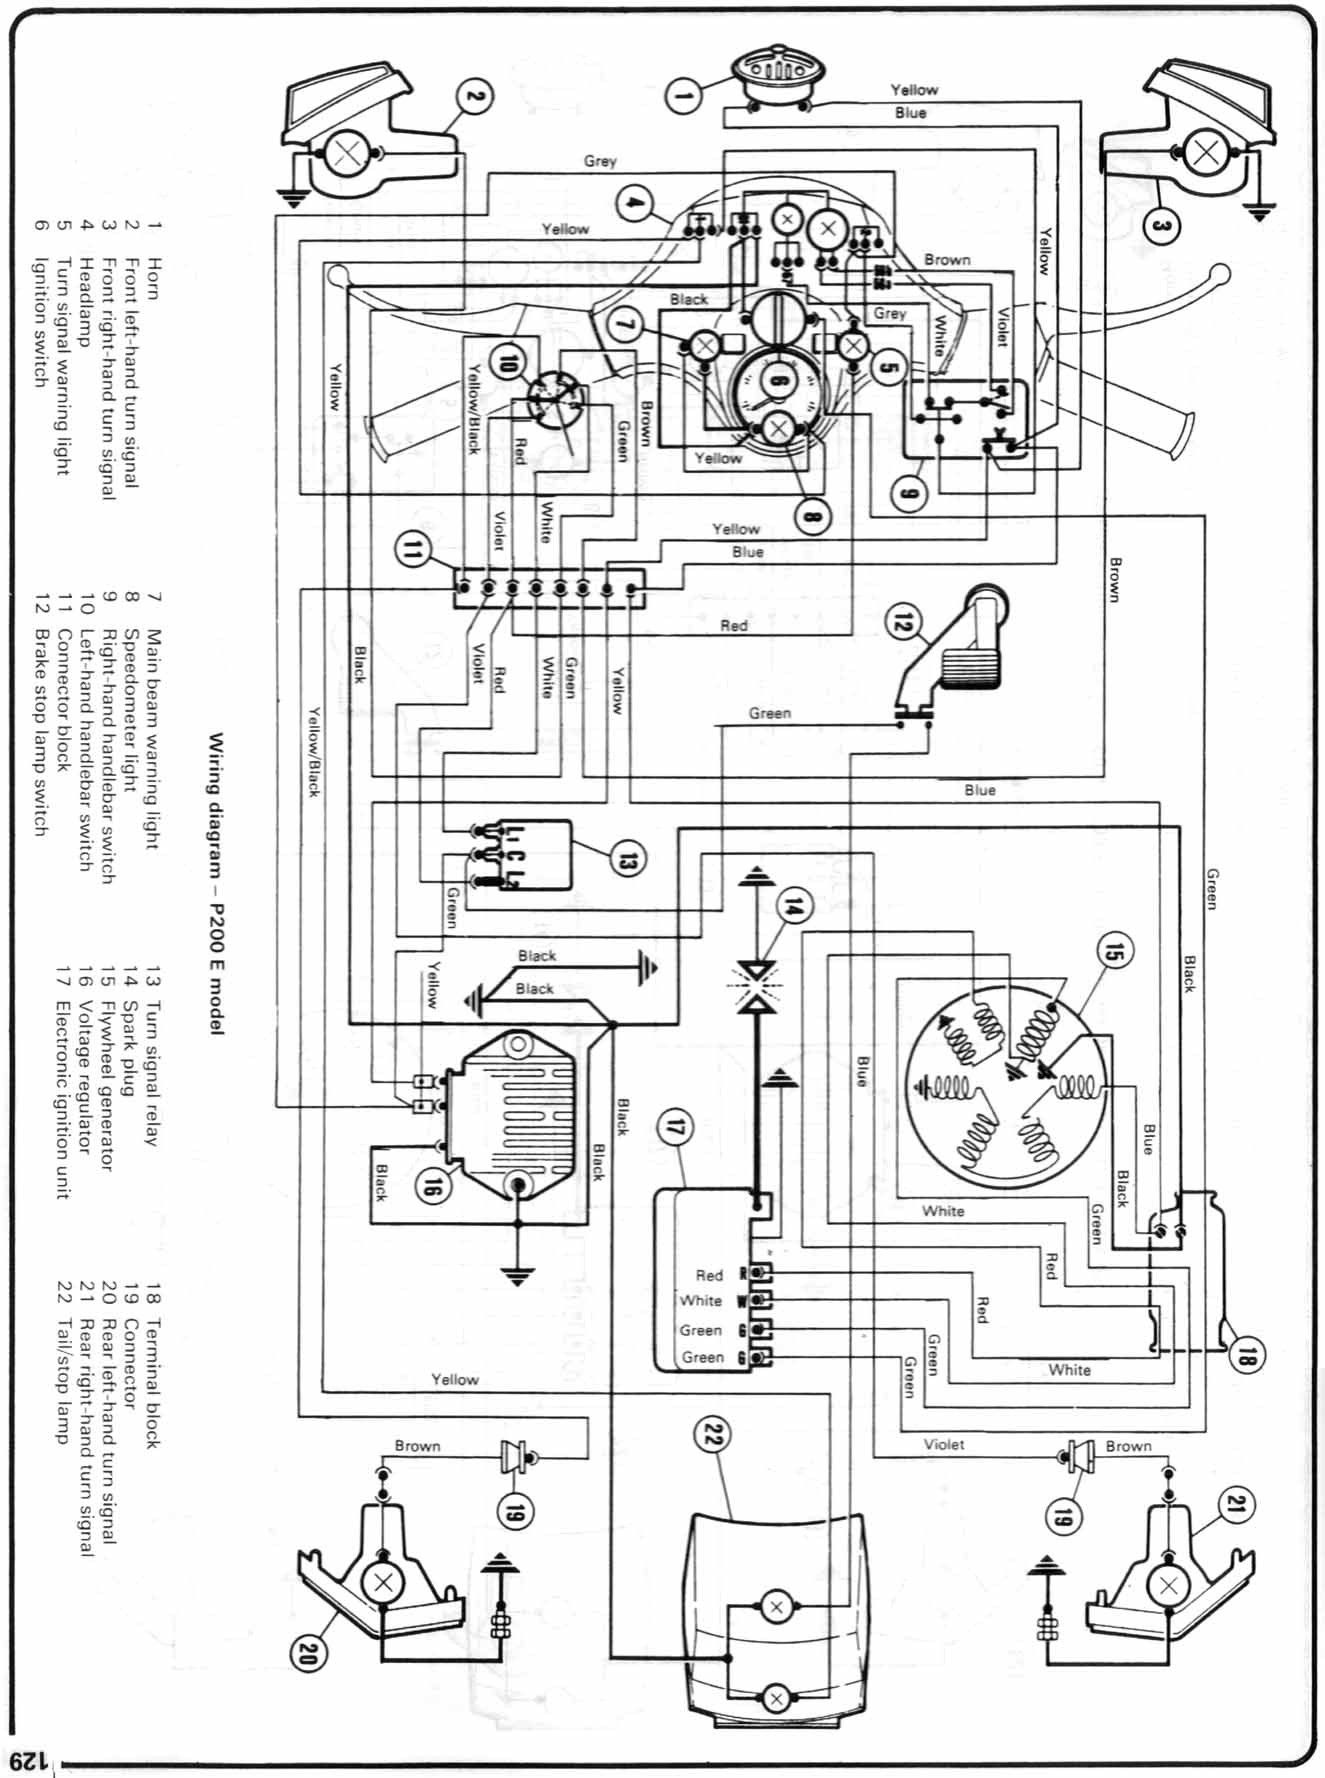 Unique Lambretta Ac Wiring Diagram With Images